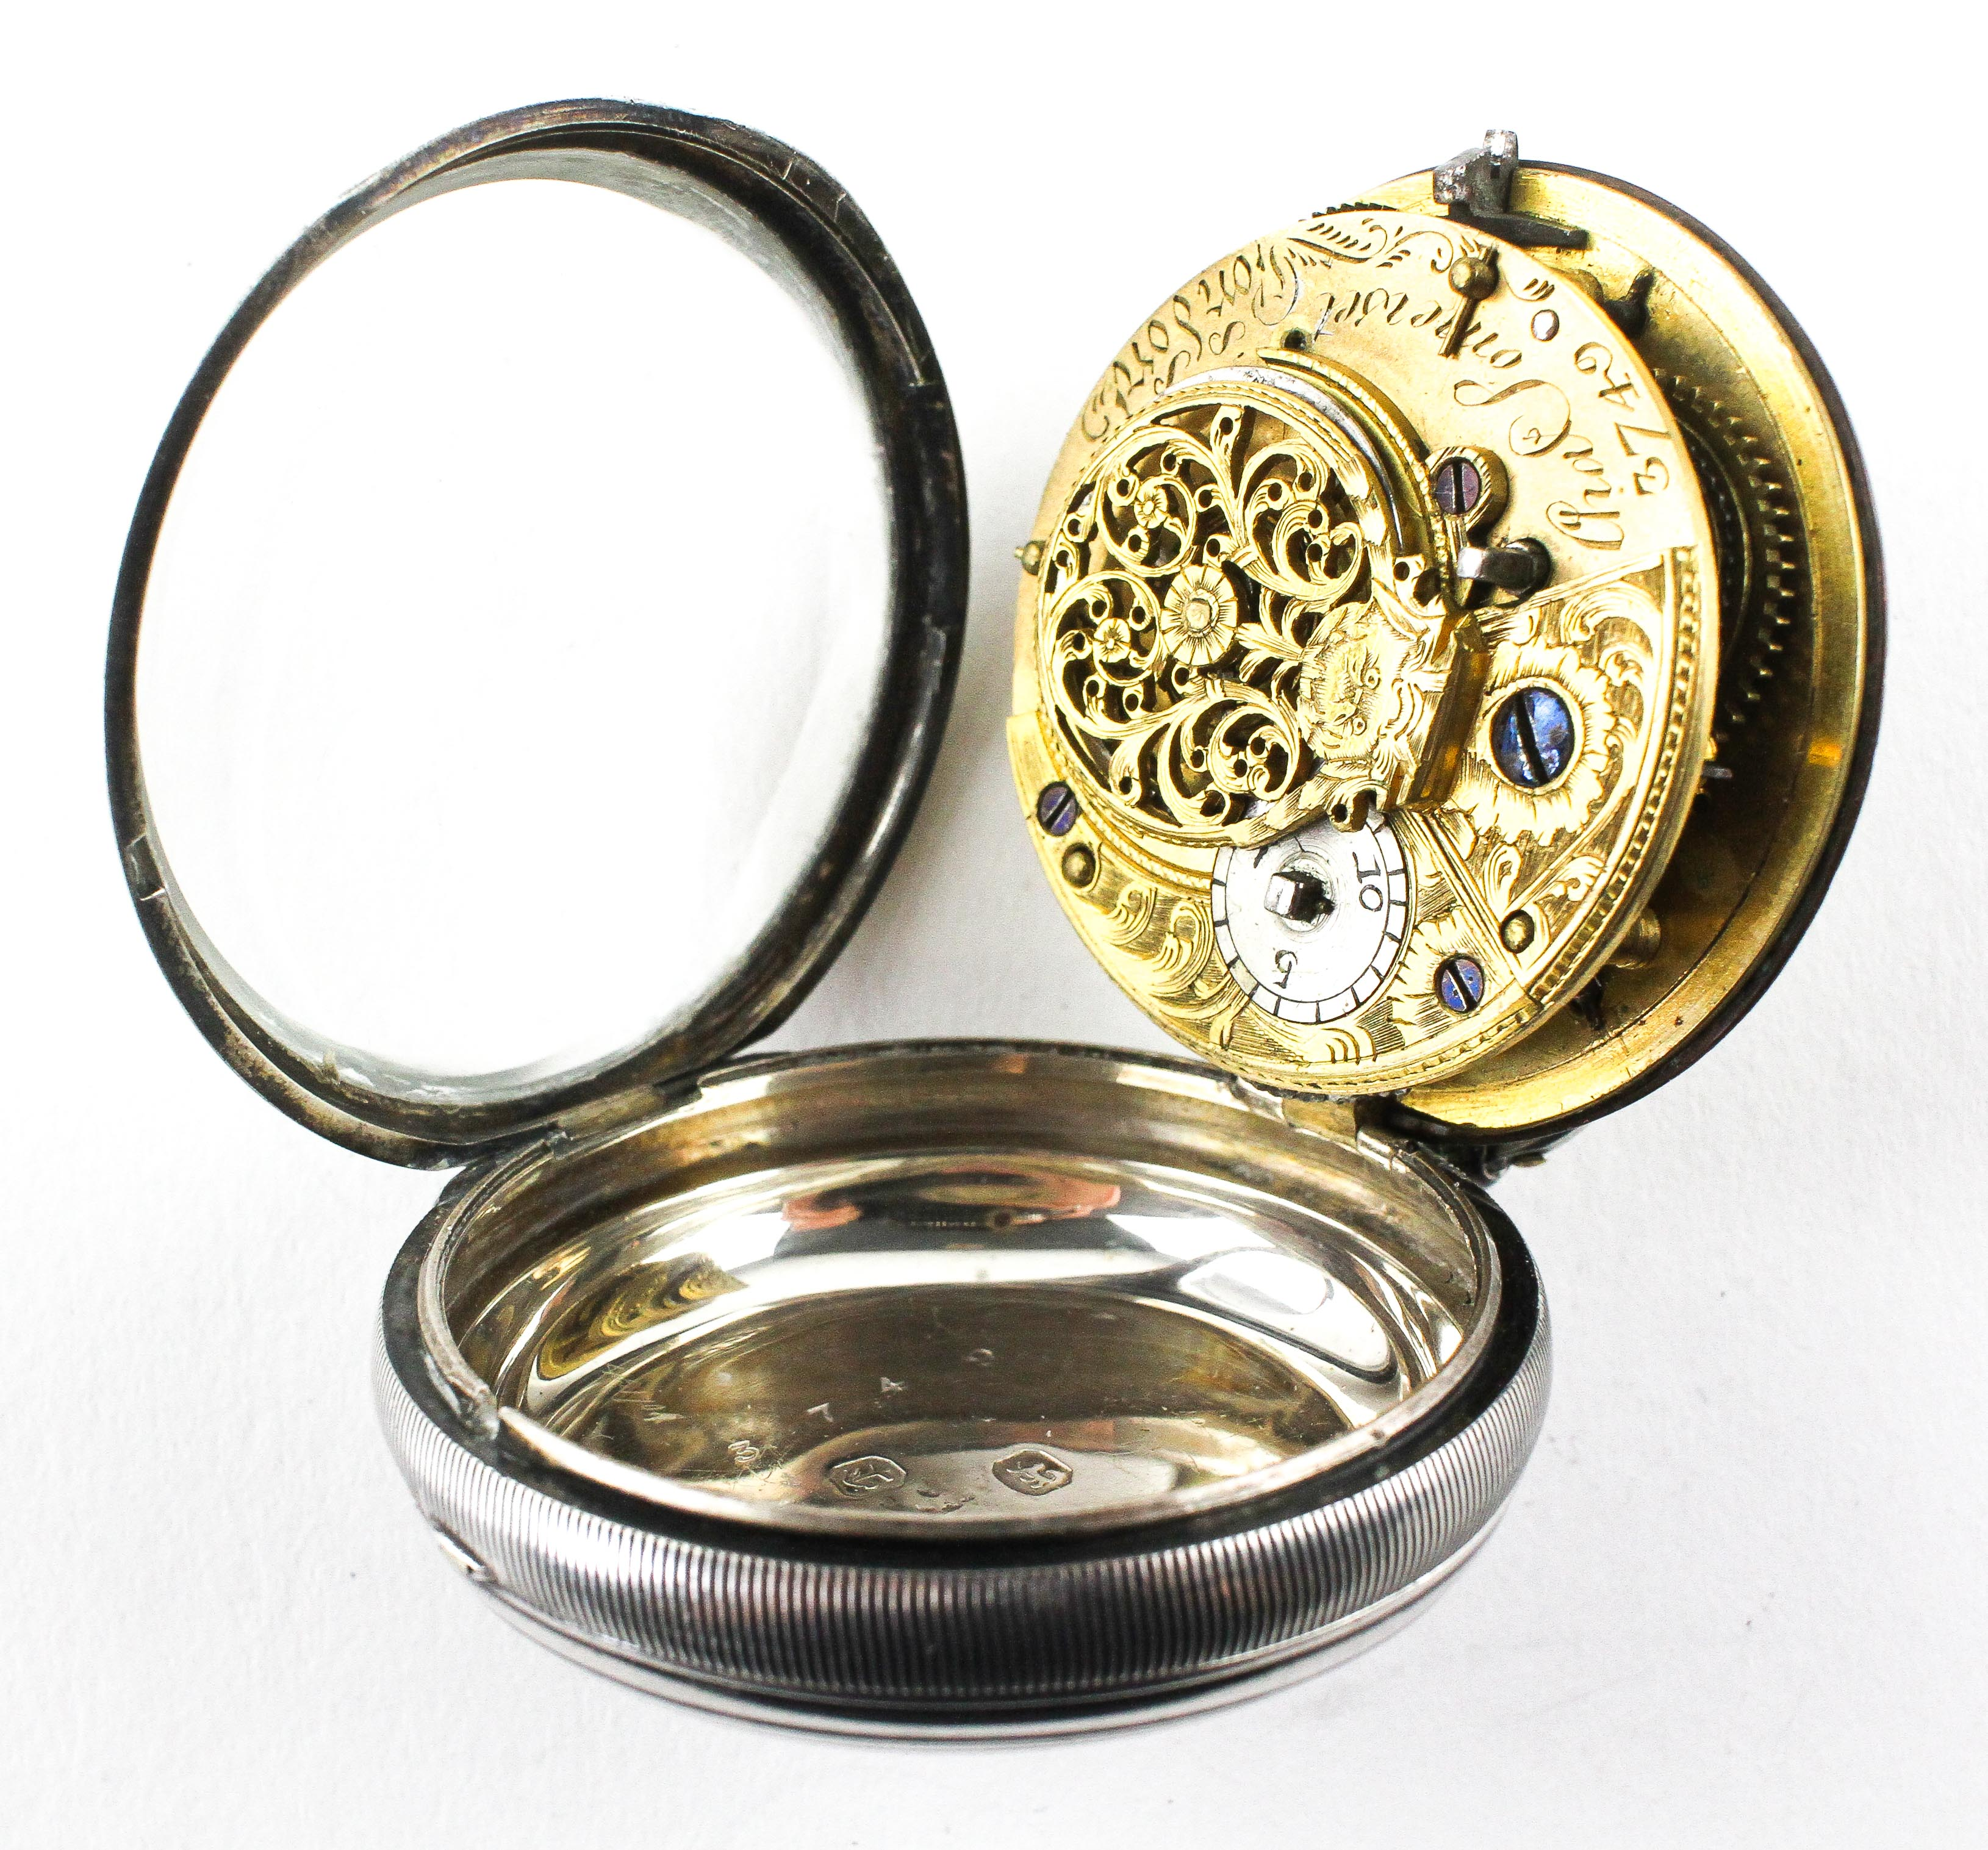 A large open face pocket watch. Circular white dial with roman numerals. Key wound movement. - Image 2 of 3